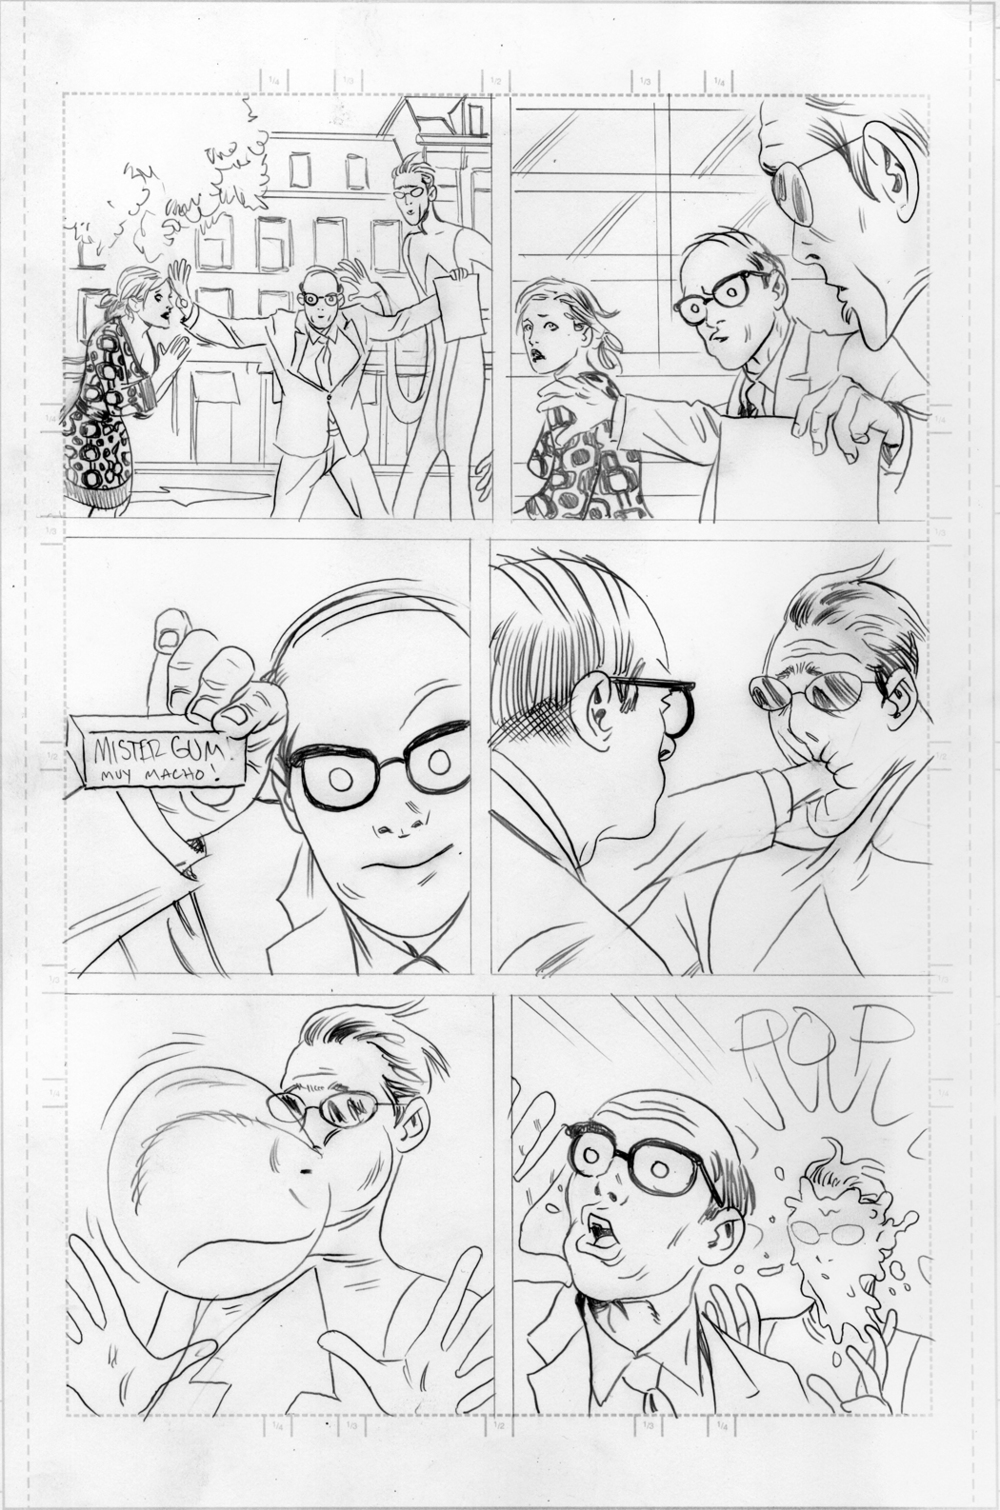 Gum pg2 pencils.jpg